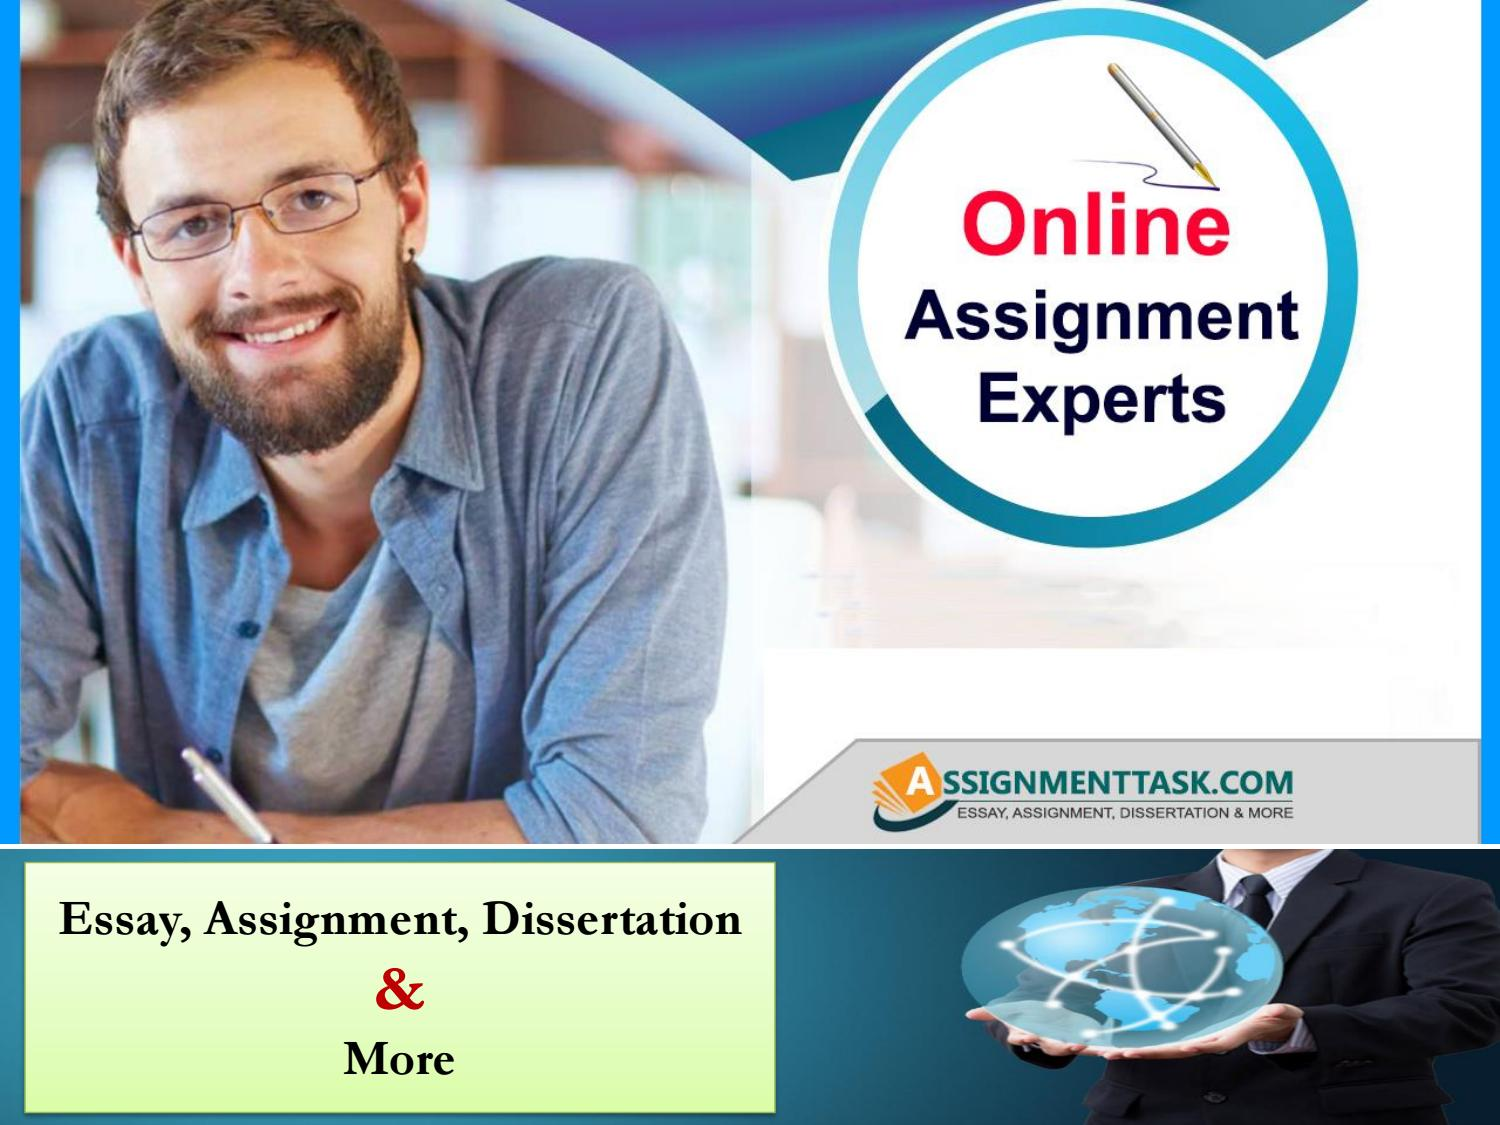 Dissertation writing services in singapore government